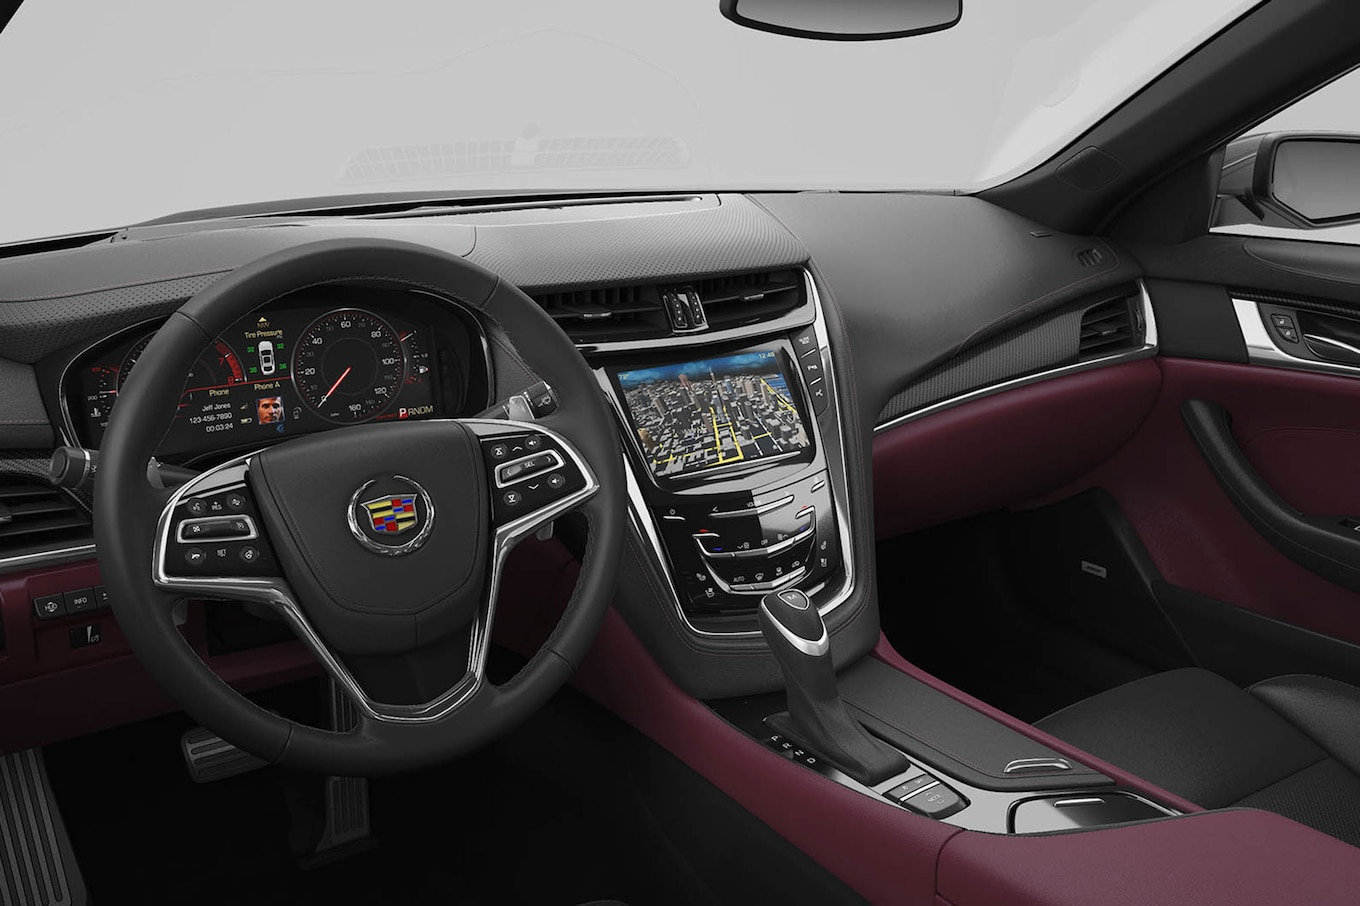 hight resolution of 2014 cadillac cts 17 222